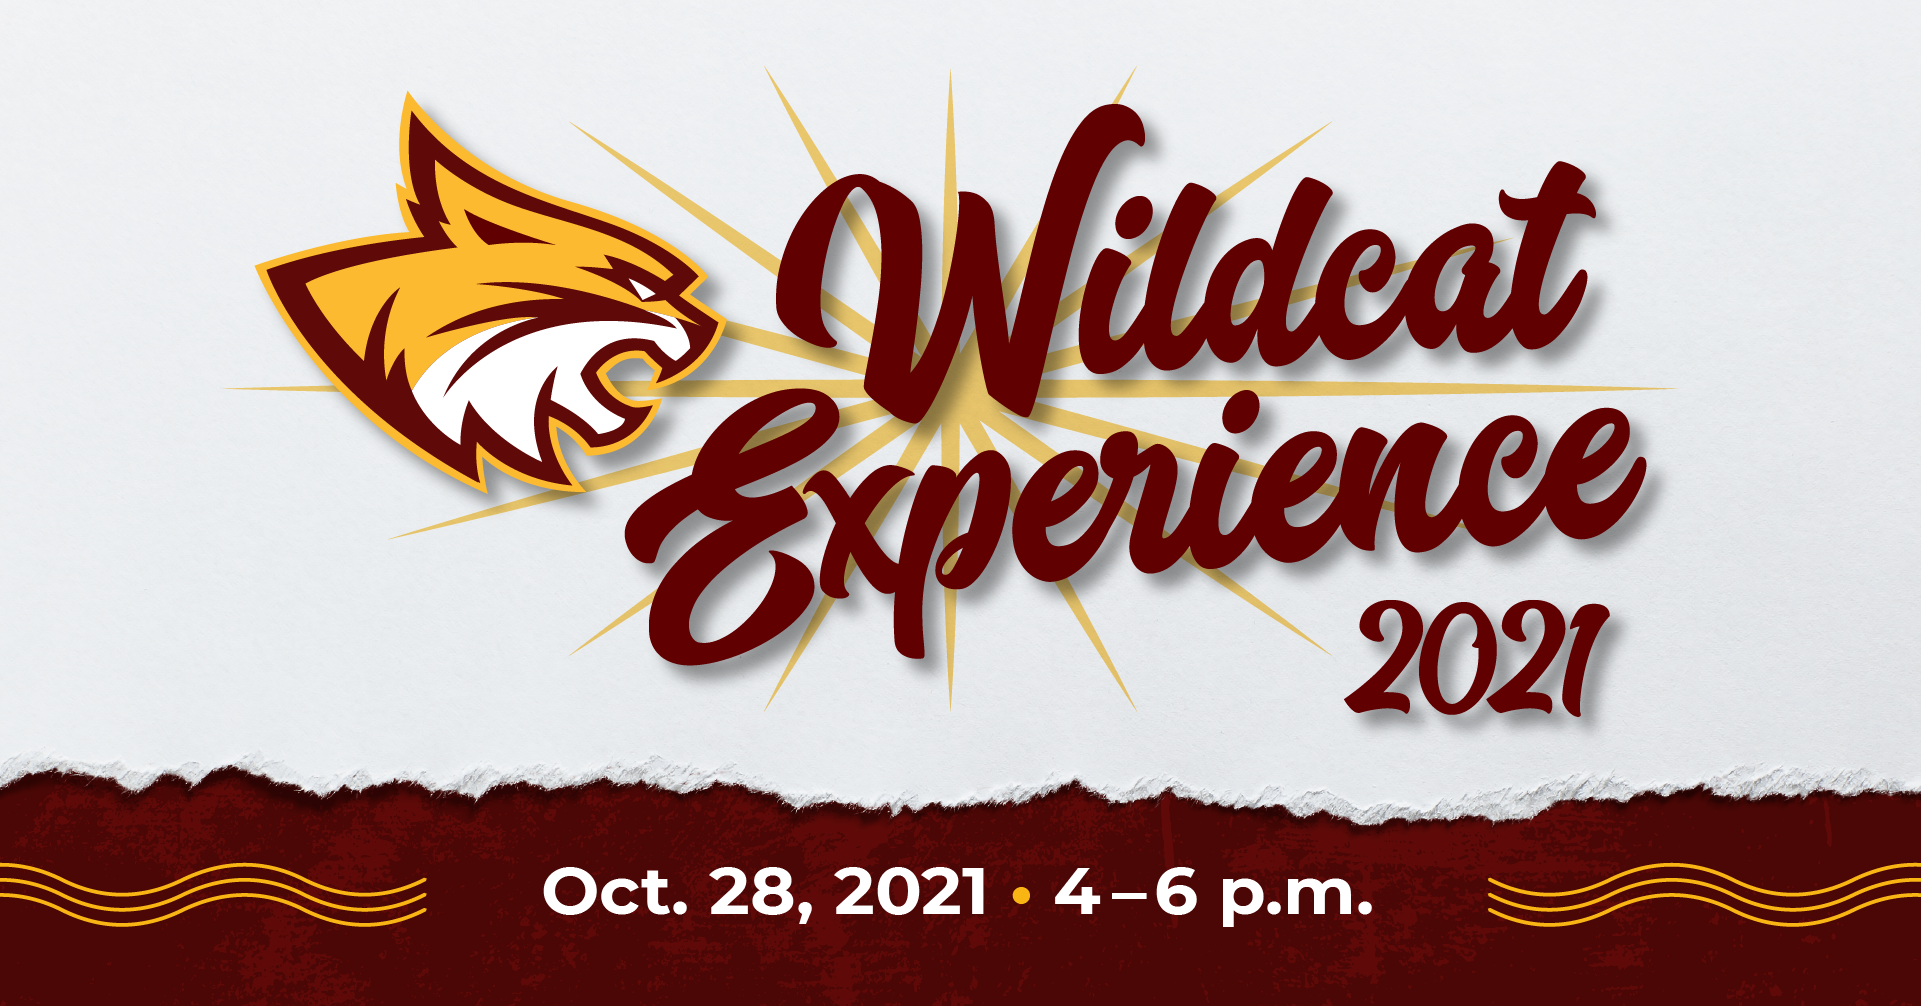 Wildcat Experience 2021 October 28 4 to 6 pm